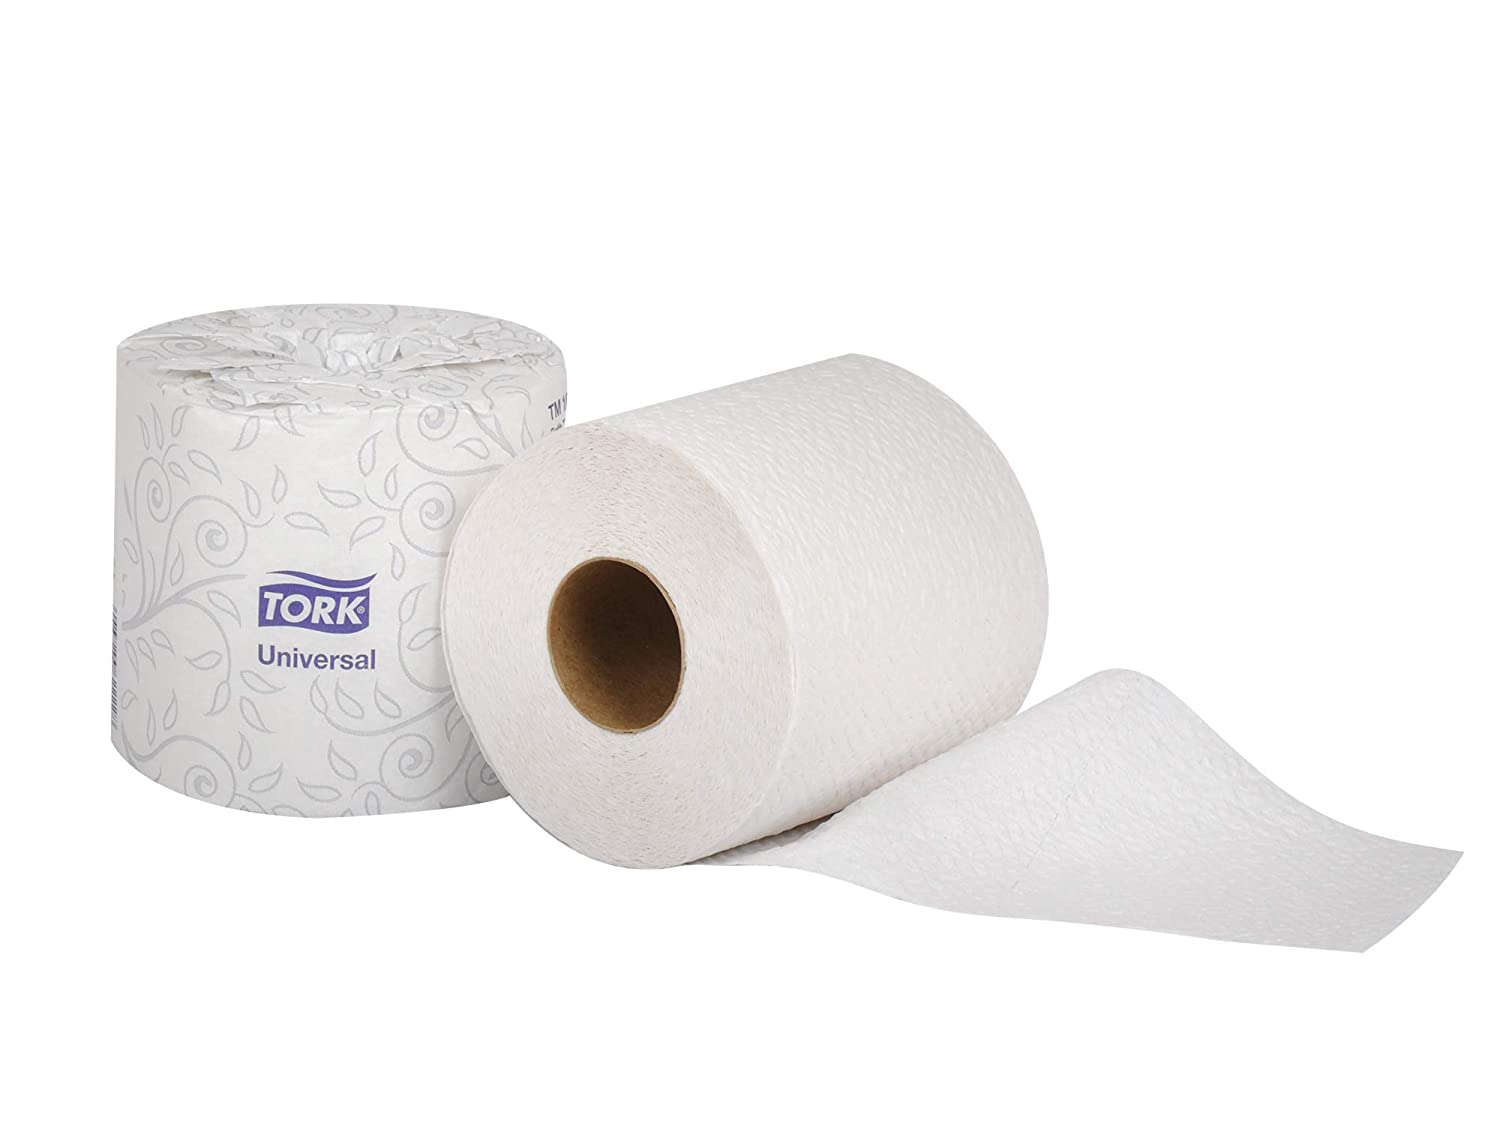 Case of 96 Rolls, 500 Sheets per Roll, 48,000 Sheets per Case Tork TM1616 Universal Bath Tissue Roll 4.5 Width x 3.75 Length White 2-Ply